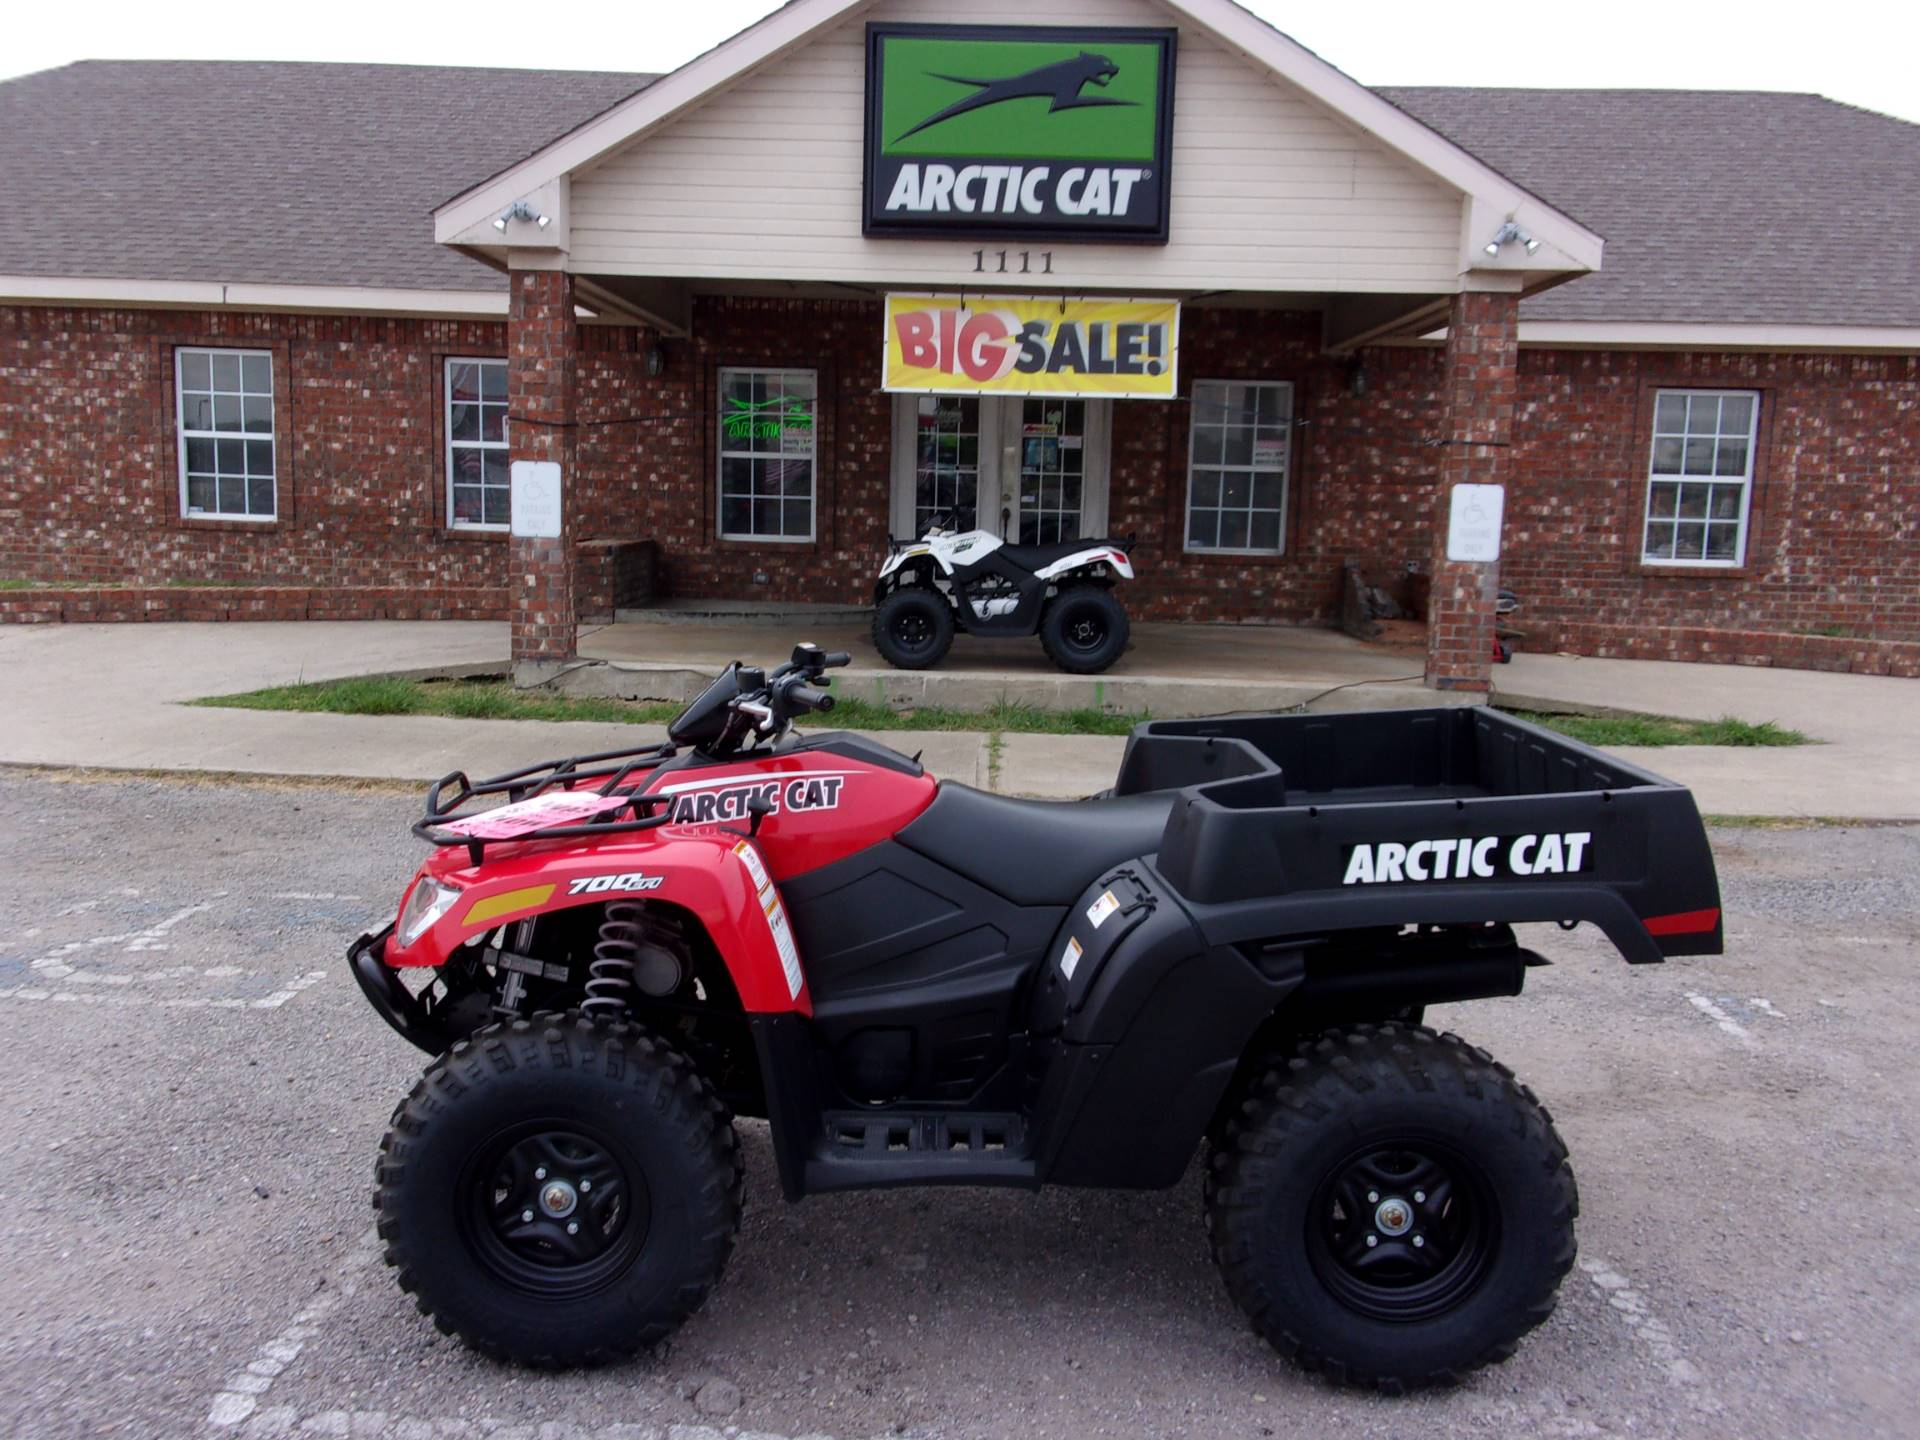 2017 Arctic Cat Tbx 700 Eps In Melissa Texas Photo 1